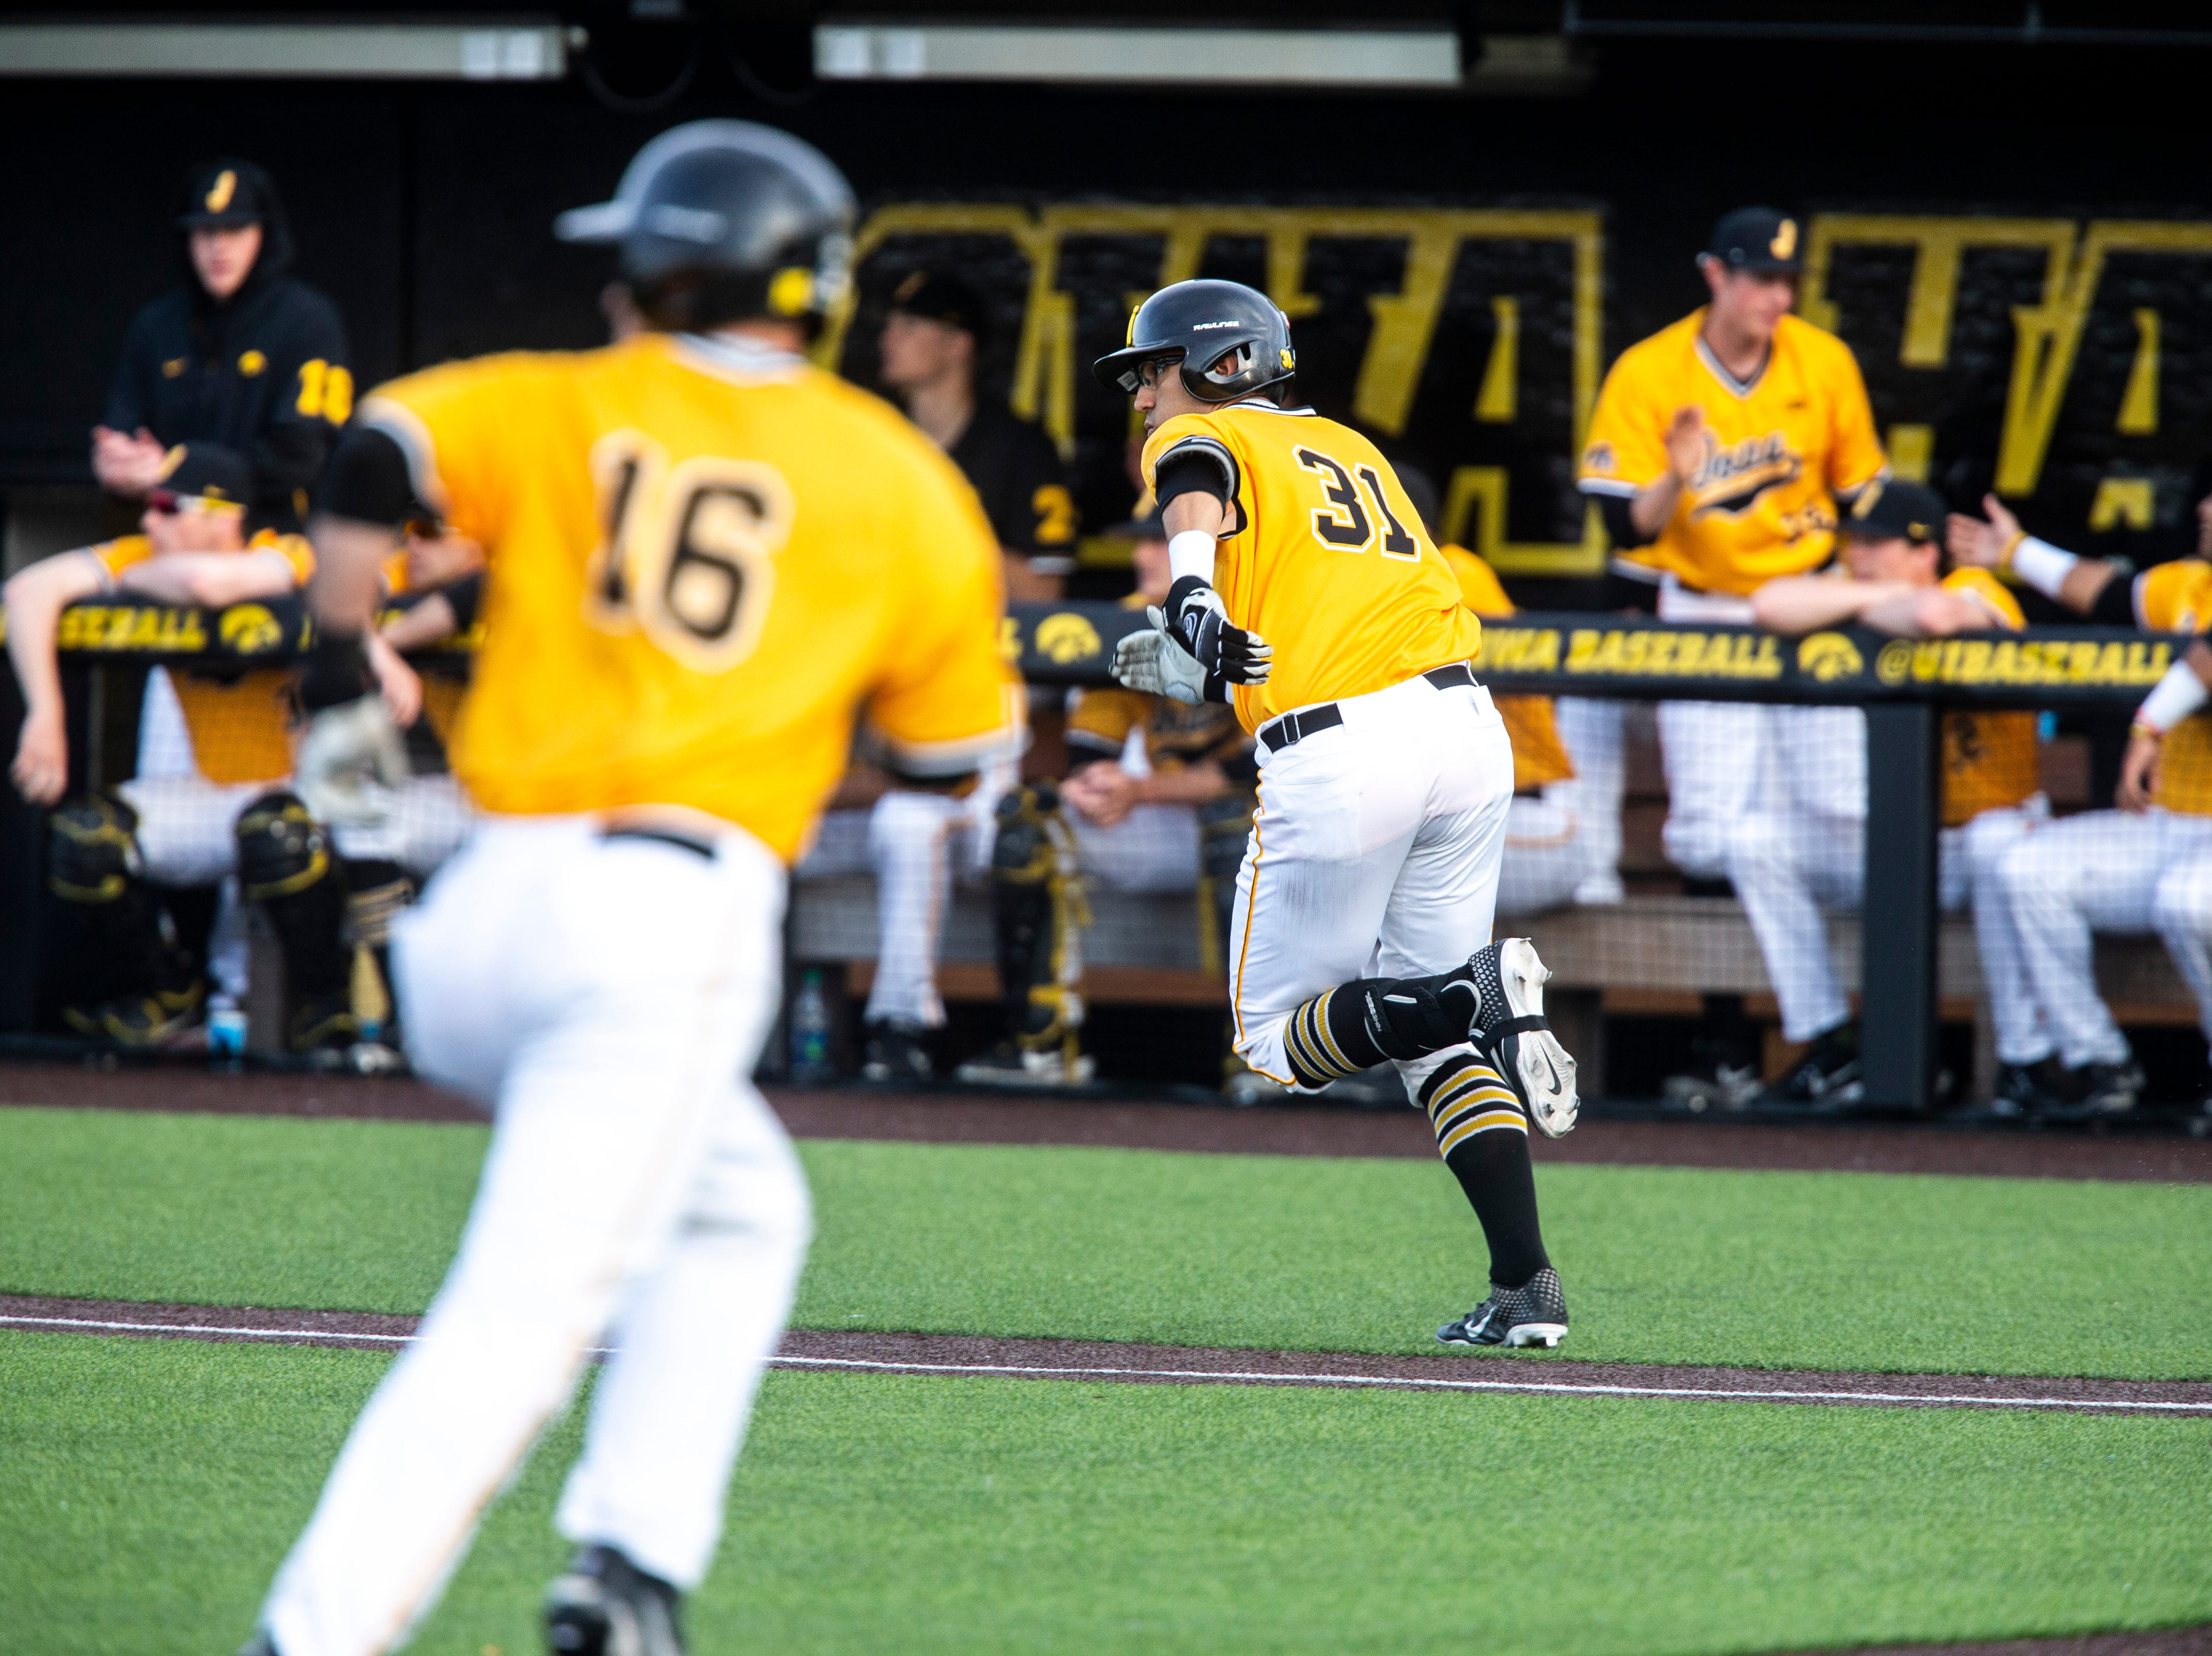 Iowa infielder Matthew Sosa (31) runs to first while Tanner Wetrich (16) scores a run during a NCAA Big Ten Conference baseball game on Saturday, April 6, 2019, at Duane Banks Field in Iowa City, Iowa.